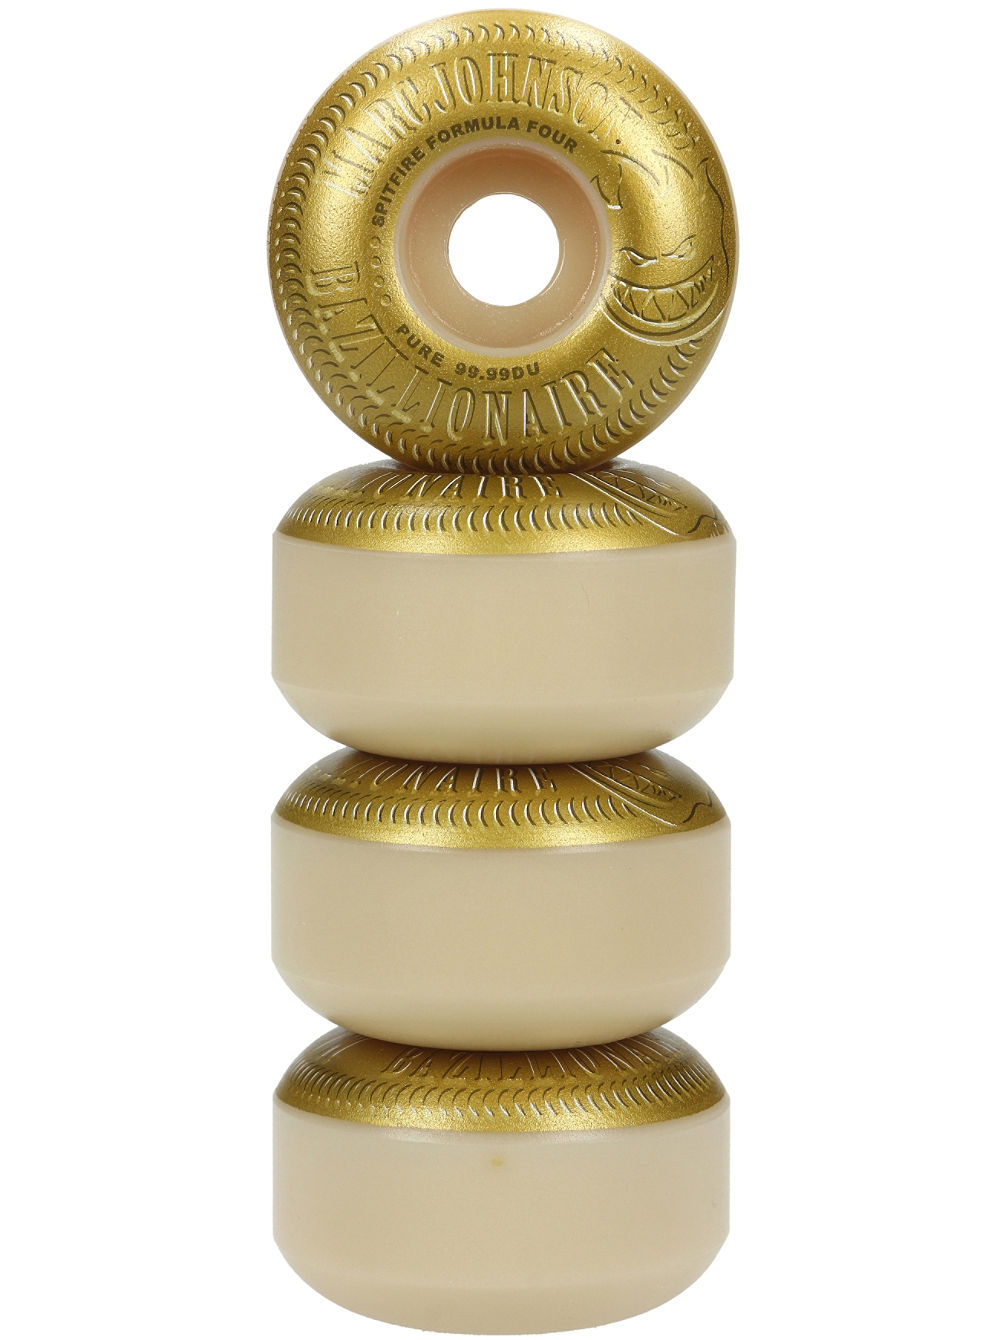 Formula Four 99D Johnson Bazillionaire 53mm